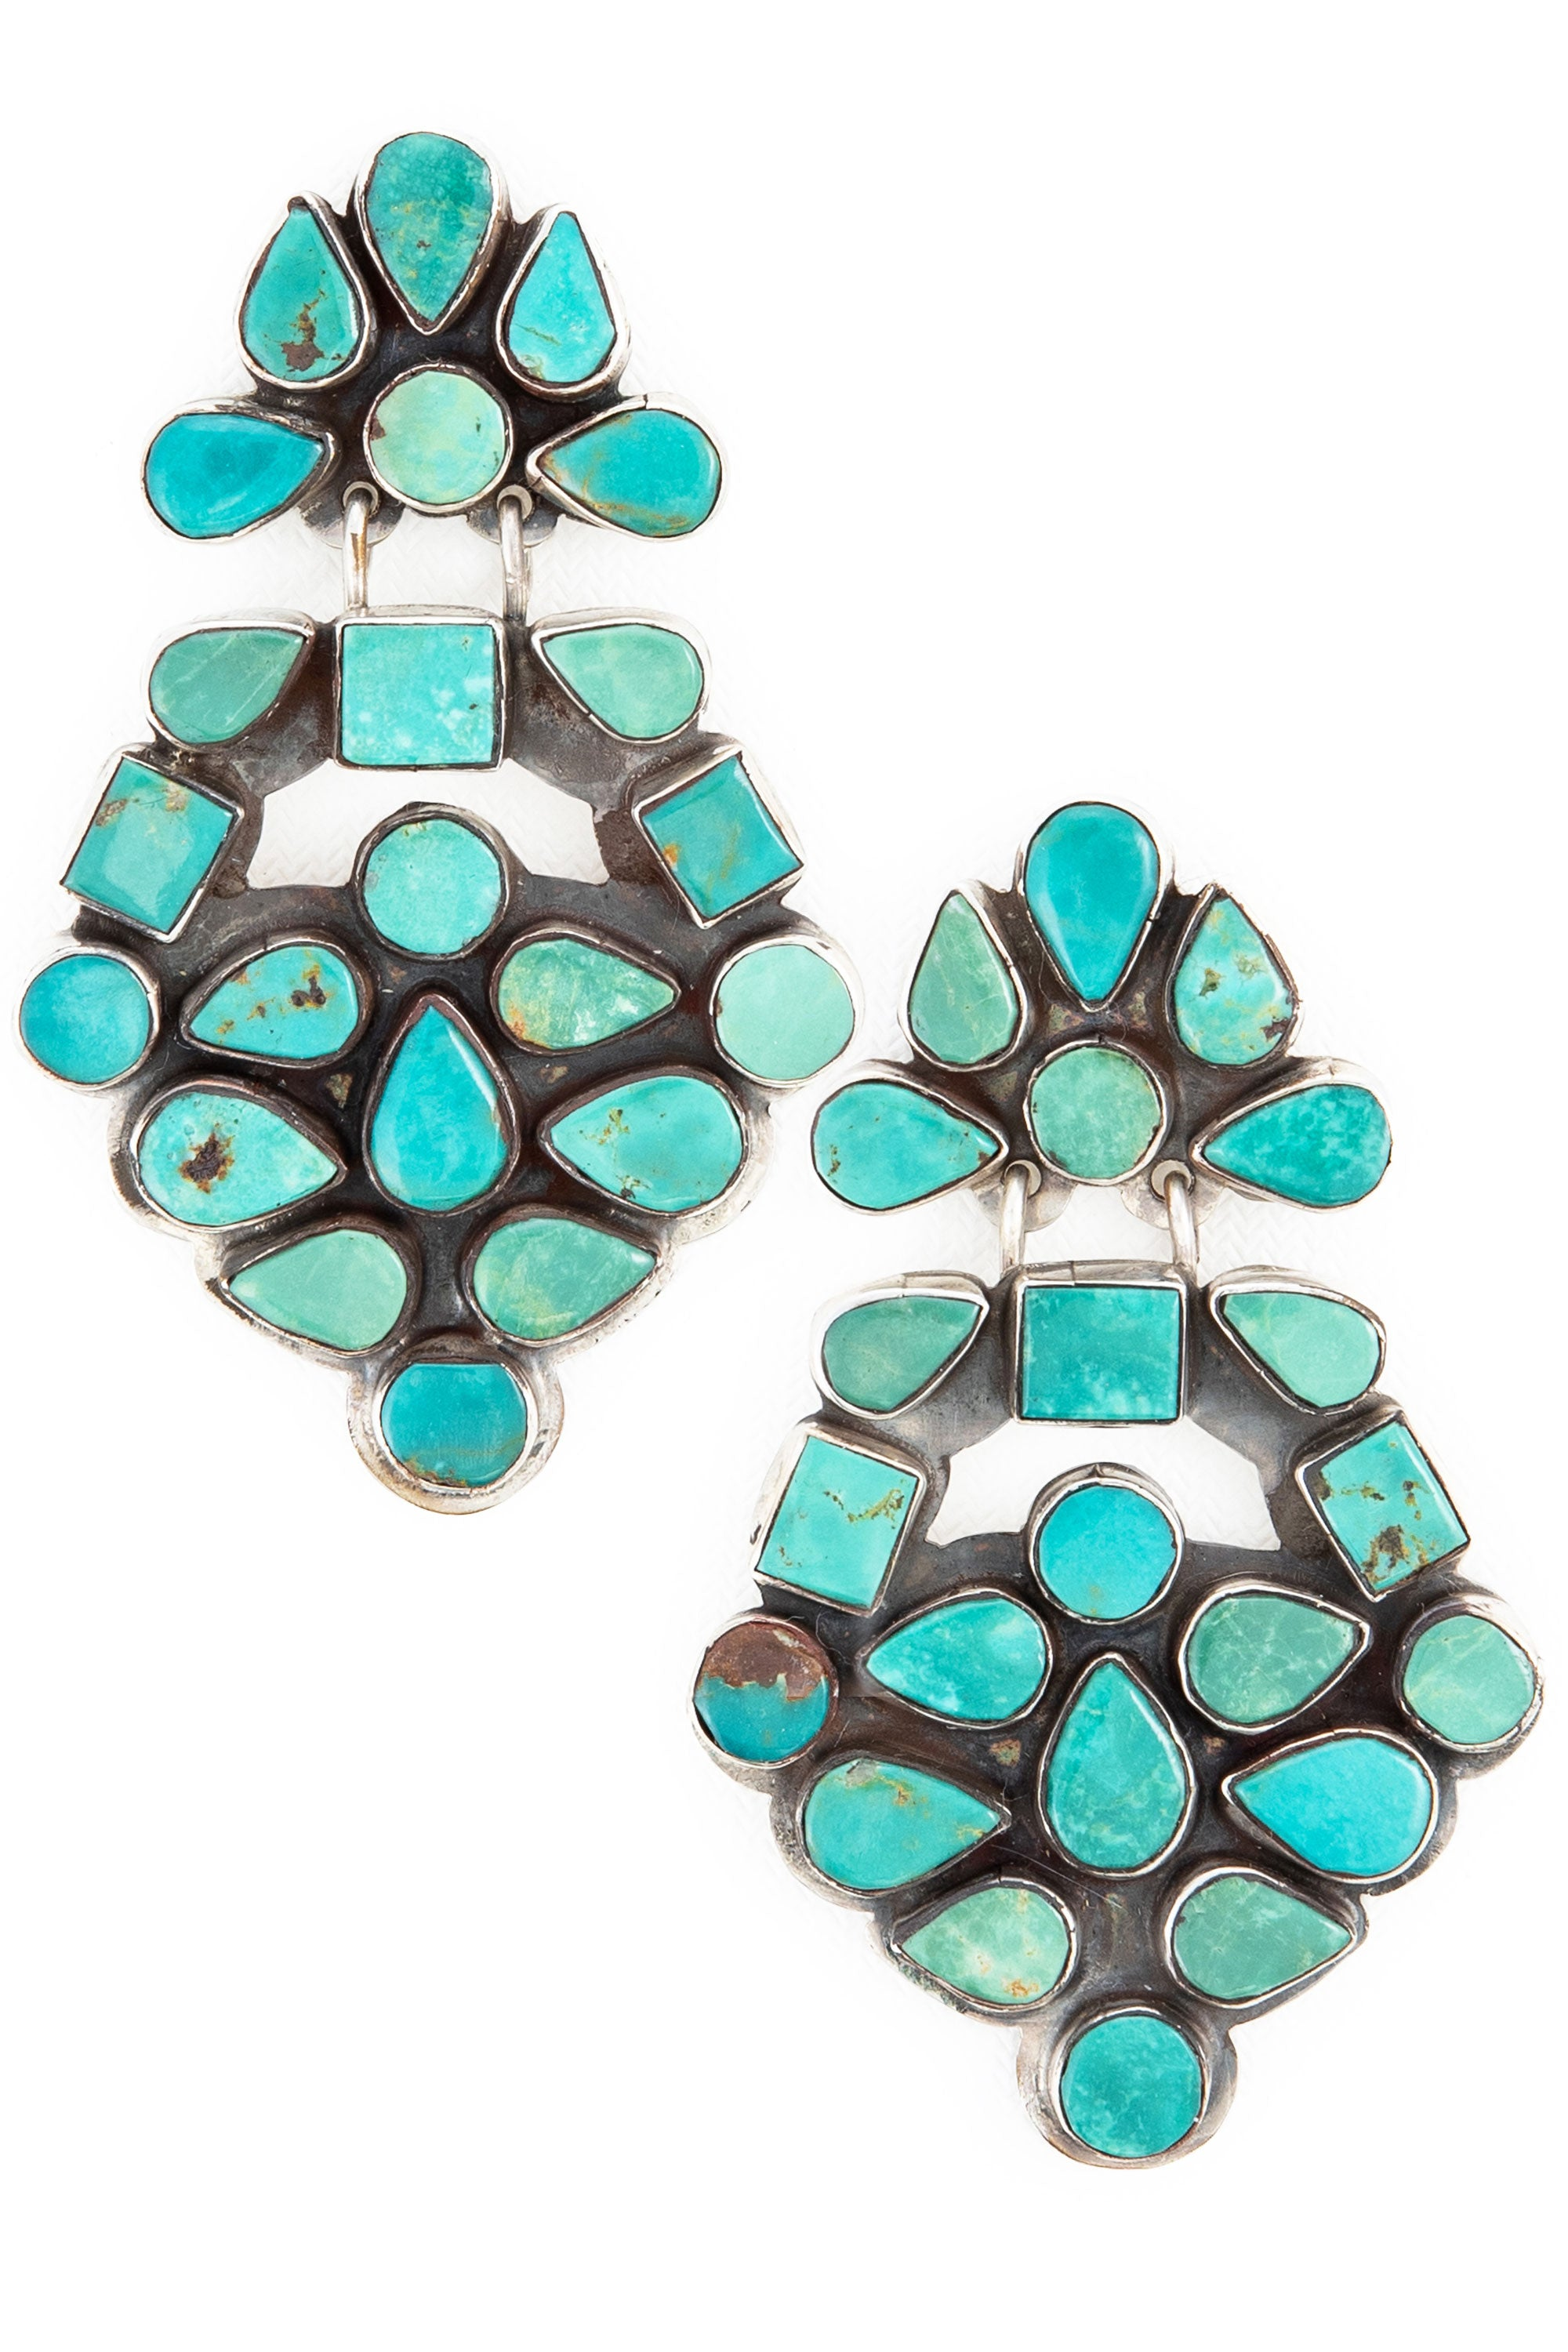 Earrings, Oscar Betz, Chandeliers, Turquoise, Hallmark, 513T1